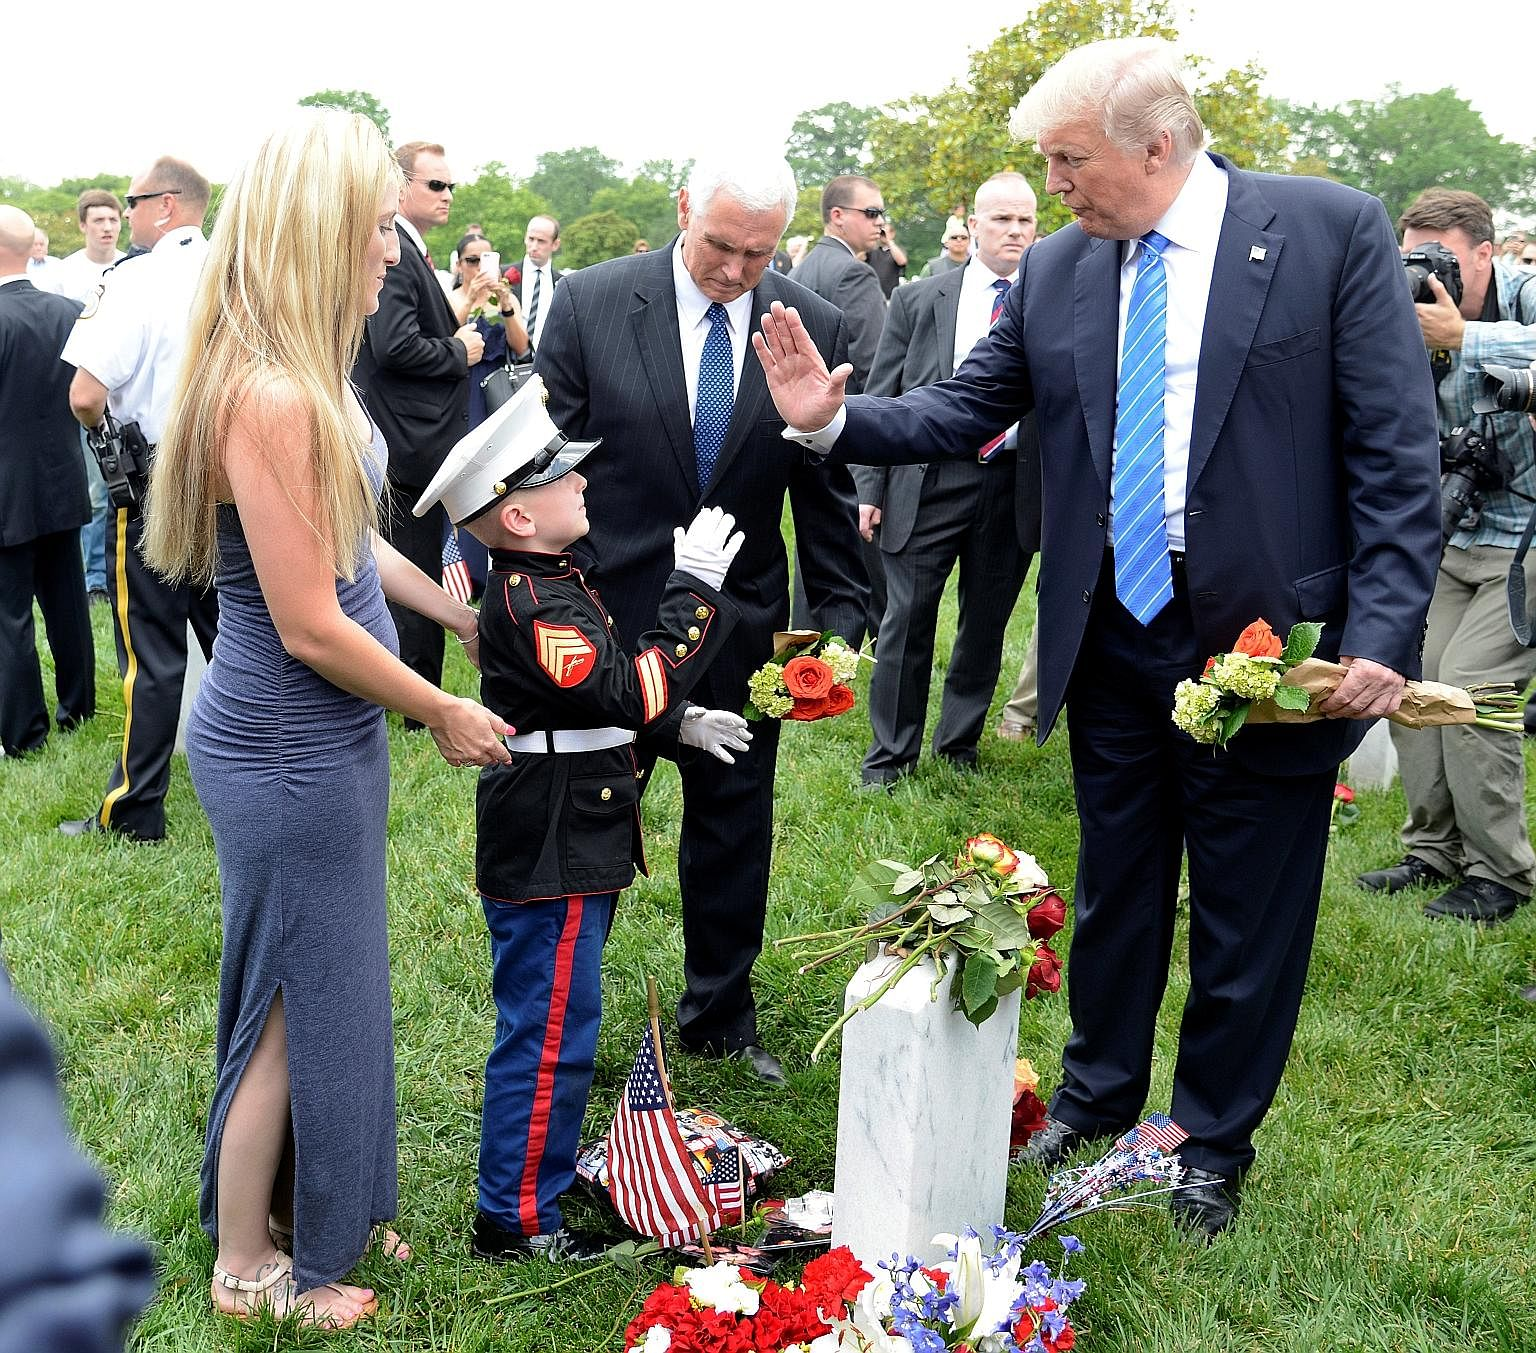 Mr Donald Trump exchanging high fives with the son of a US marine who was killed in training, as the boy's mother looks on, at Arlington National Cemetery in Virginia, which the US President visited on Monday to mark Memorial Day.